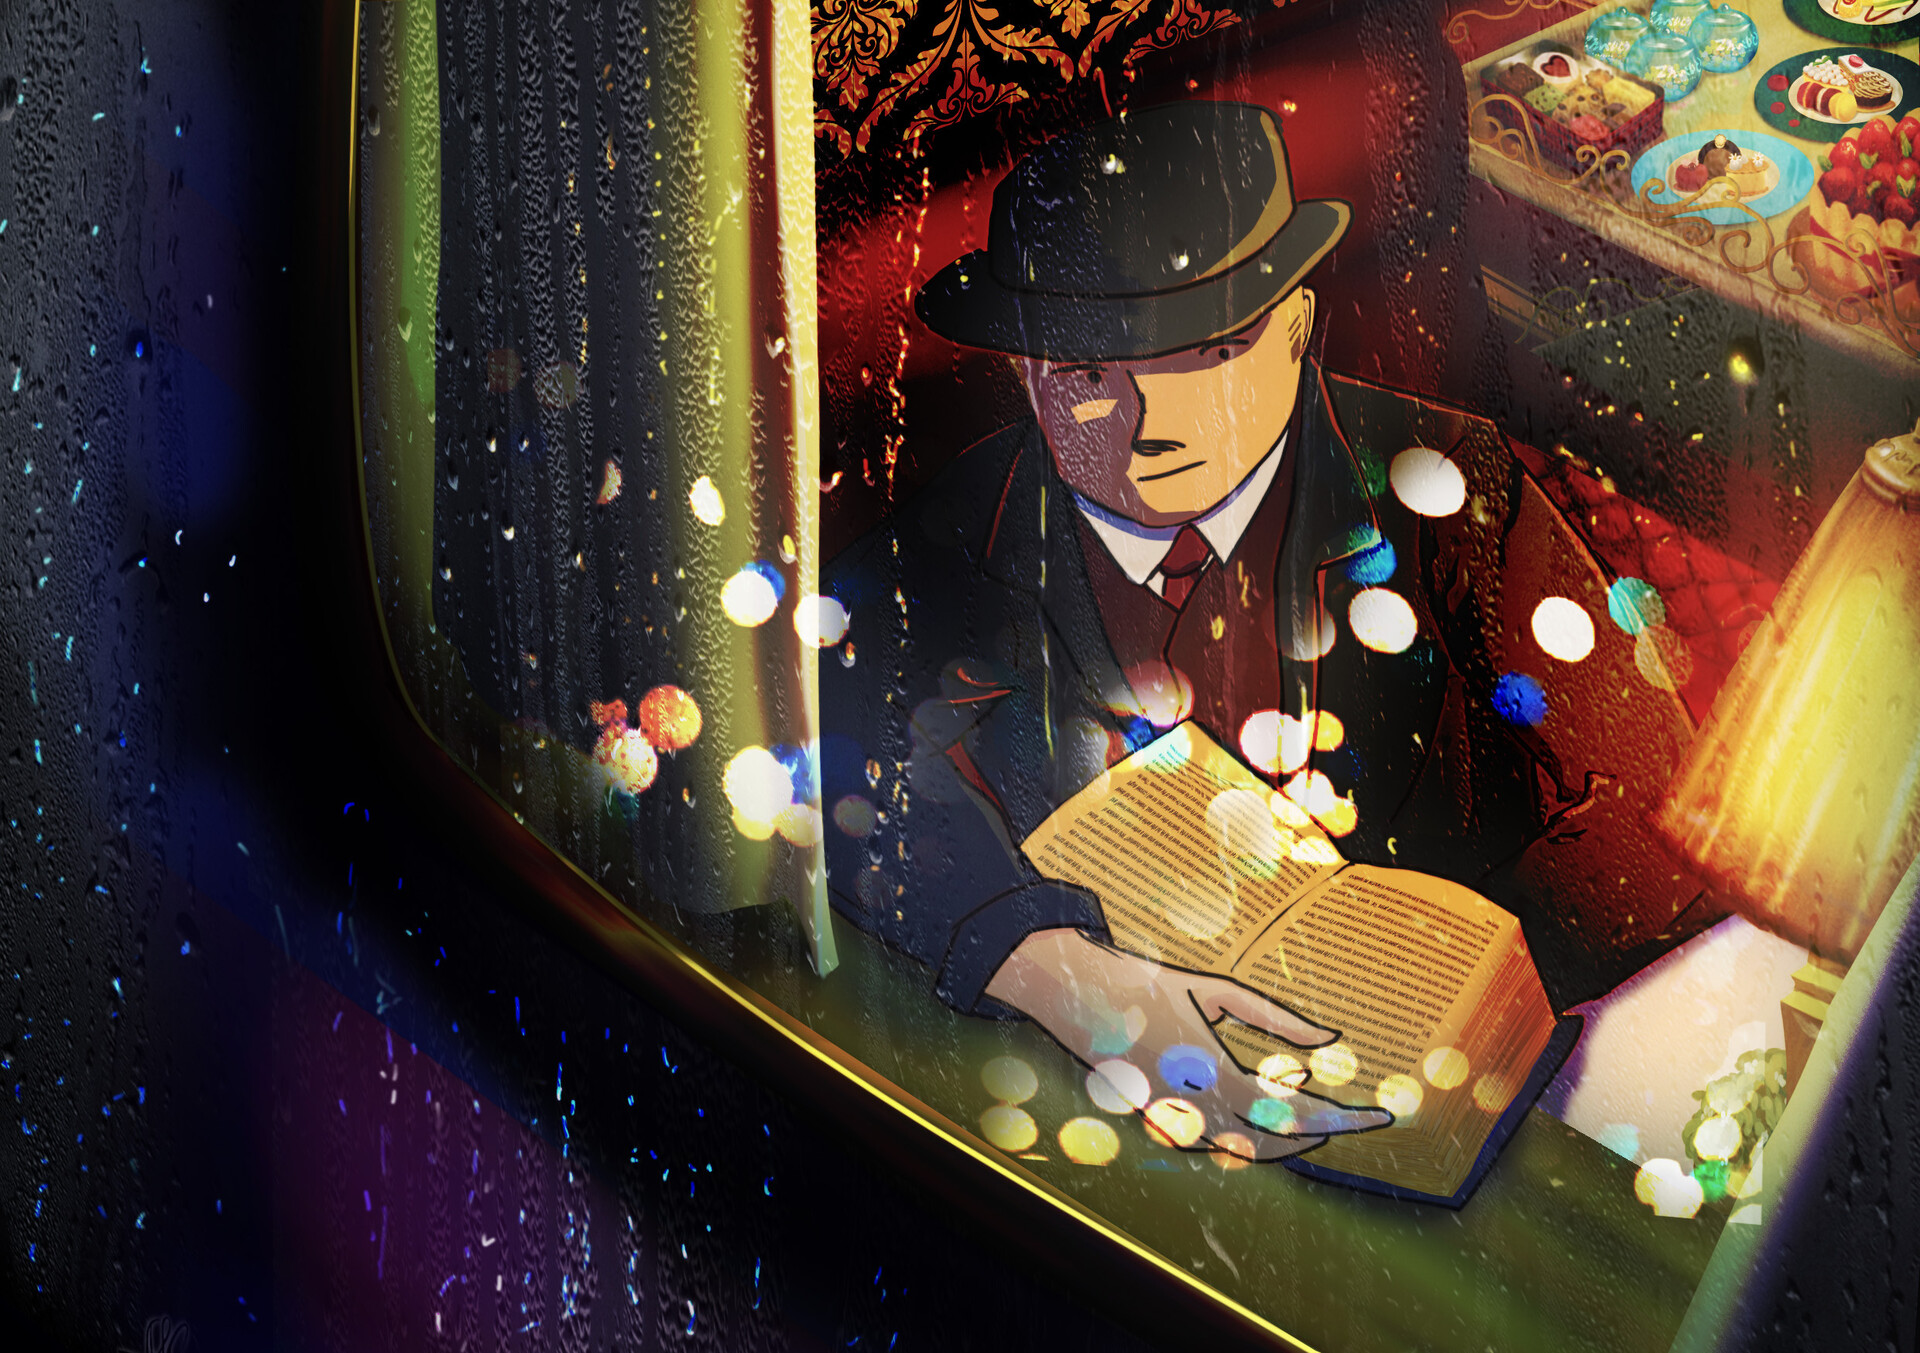 Man in the Train by Andrew Aliwarga